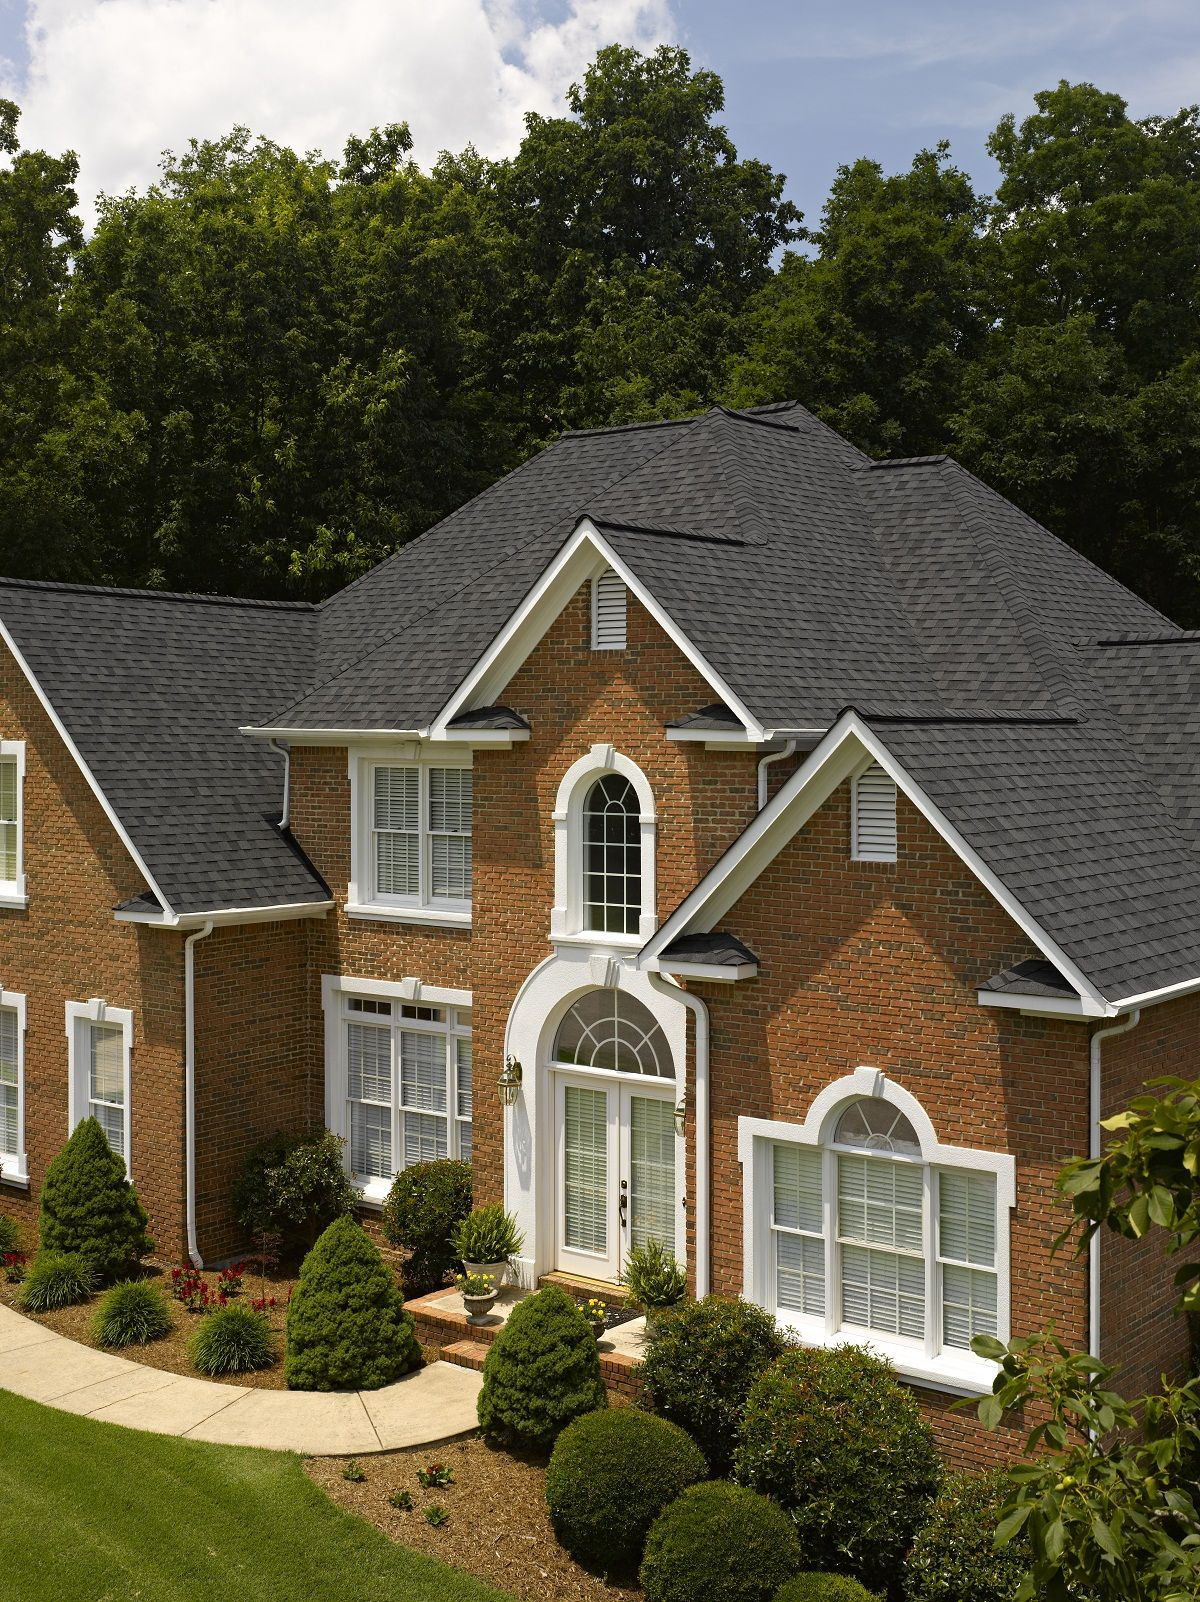 Certainteed Landmark Shingle Shown In Moire Black Roofing Shingle House House In The Woods Residential Roofing